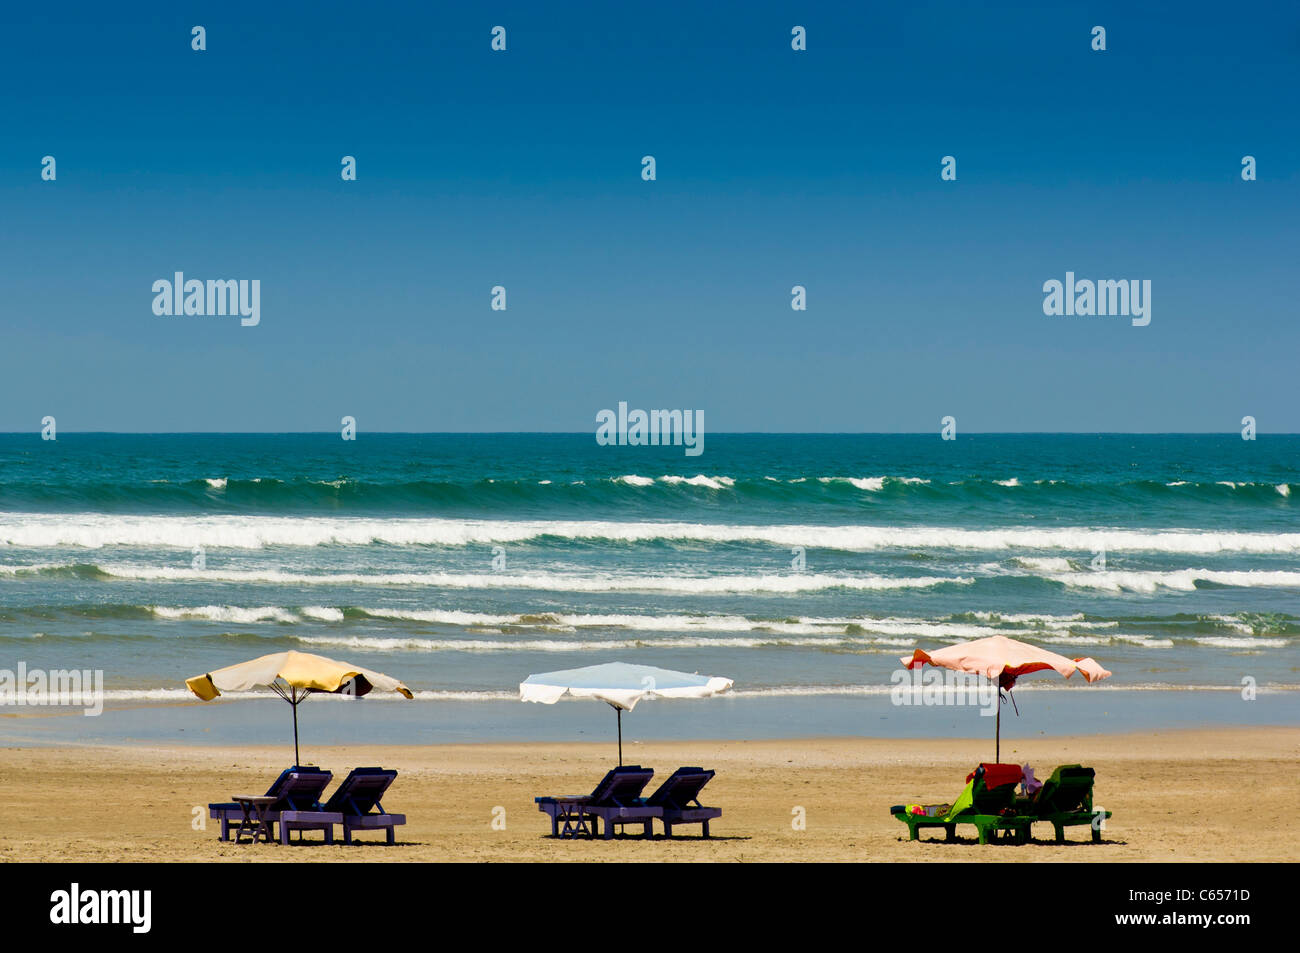 Beach with sun loungers and umbrellas, Bali. Indian ocean in background. - Stock Image